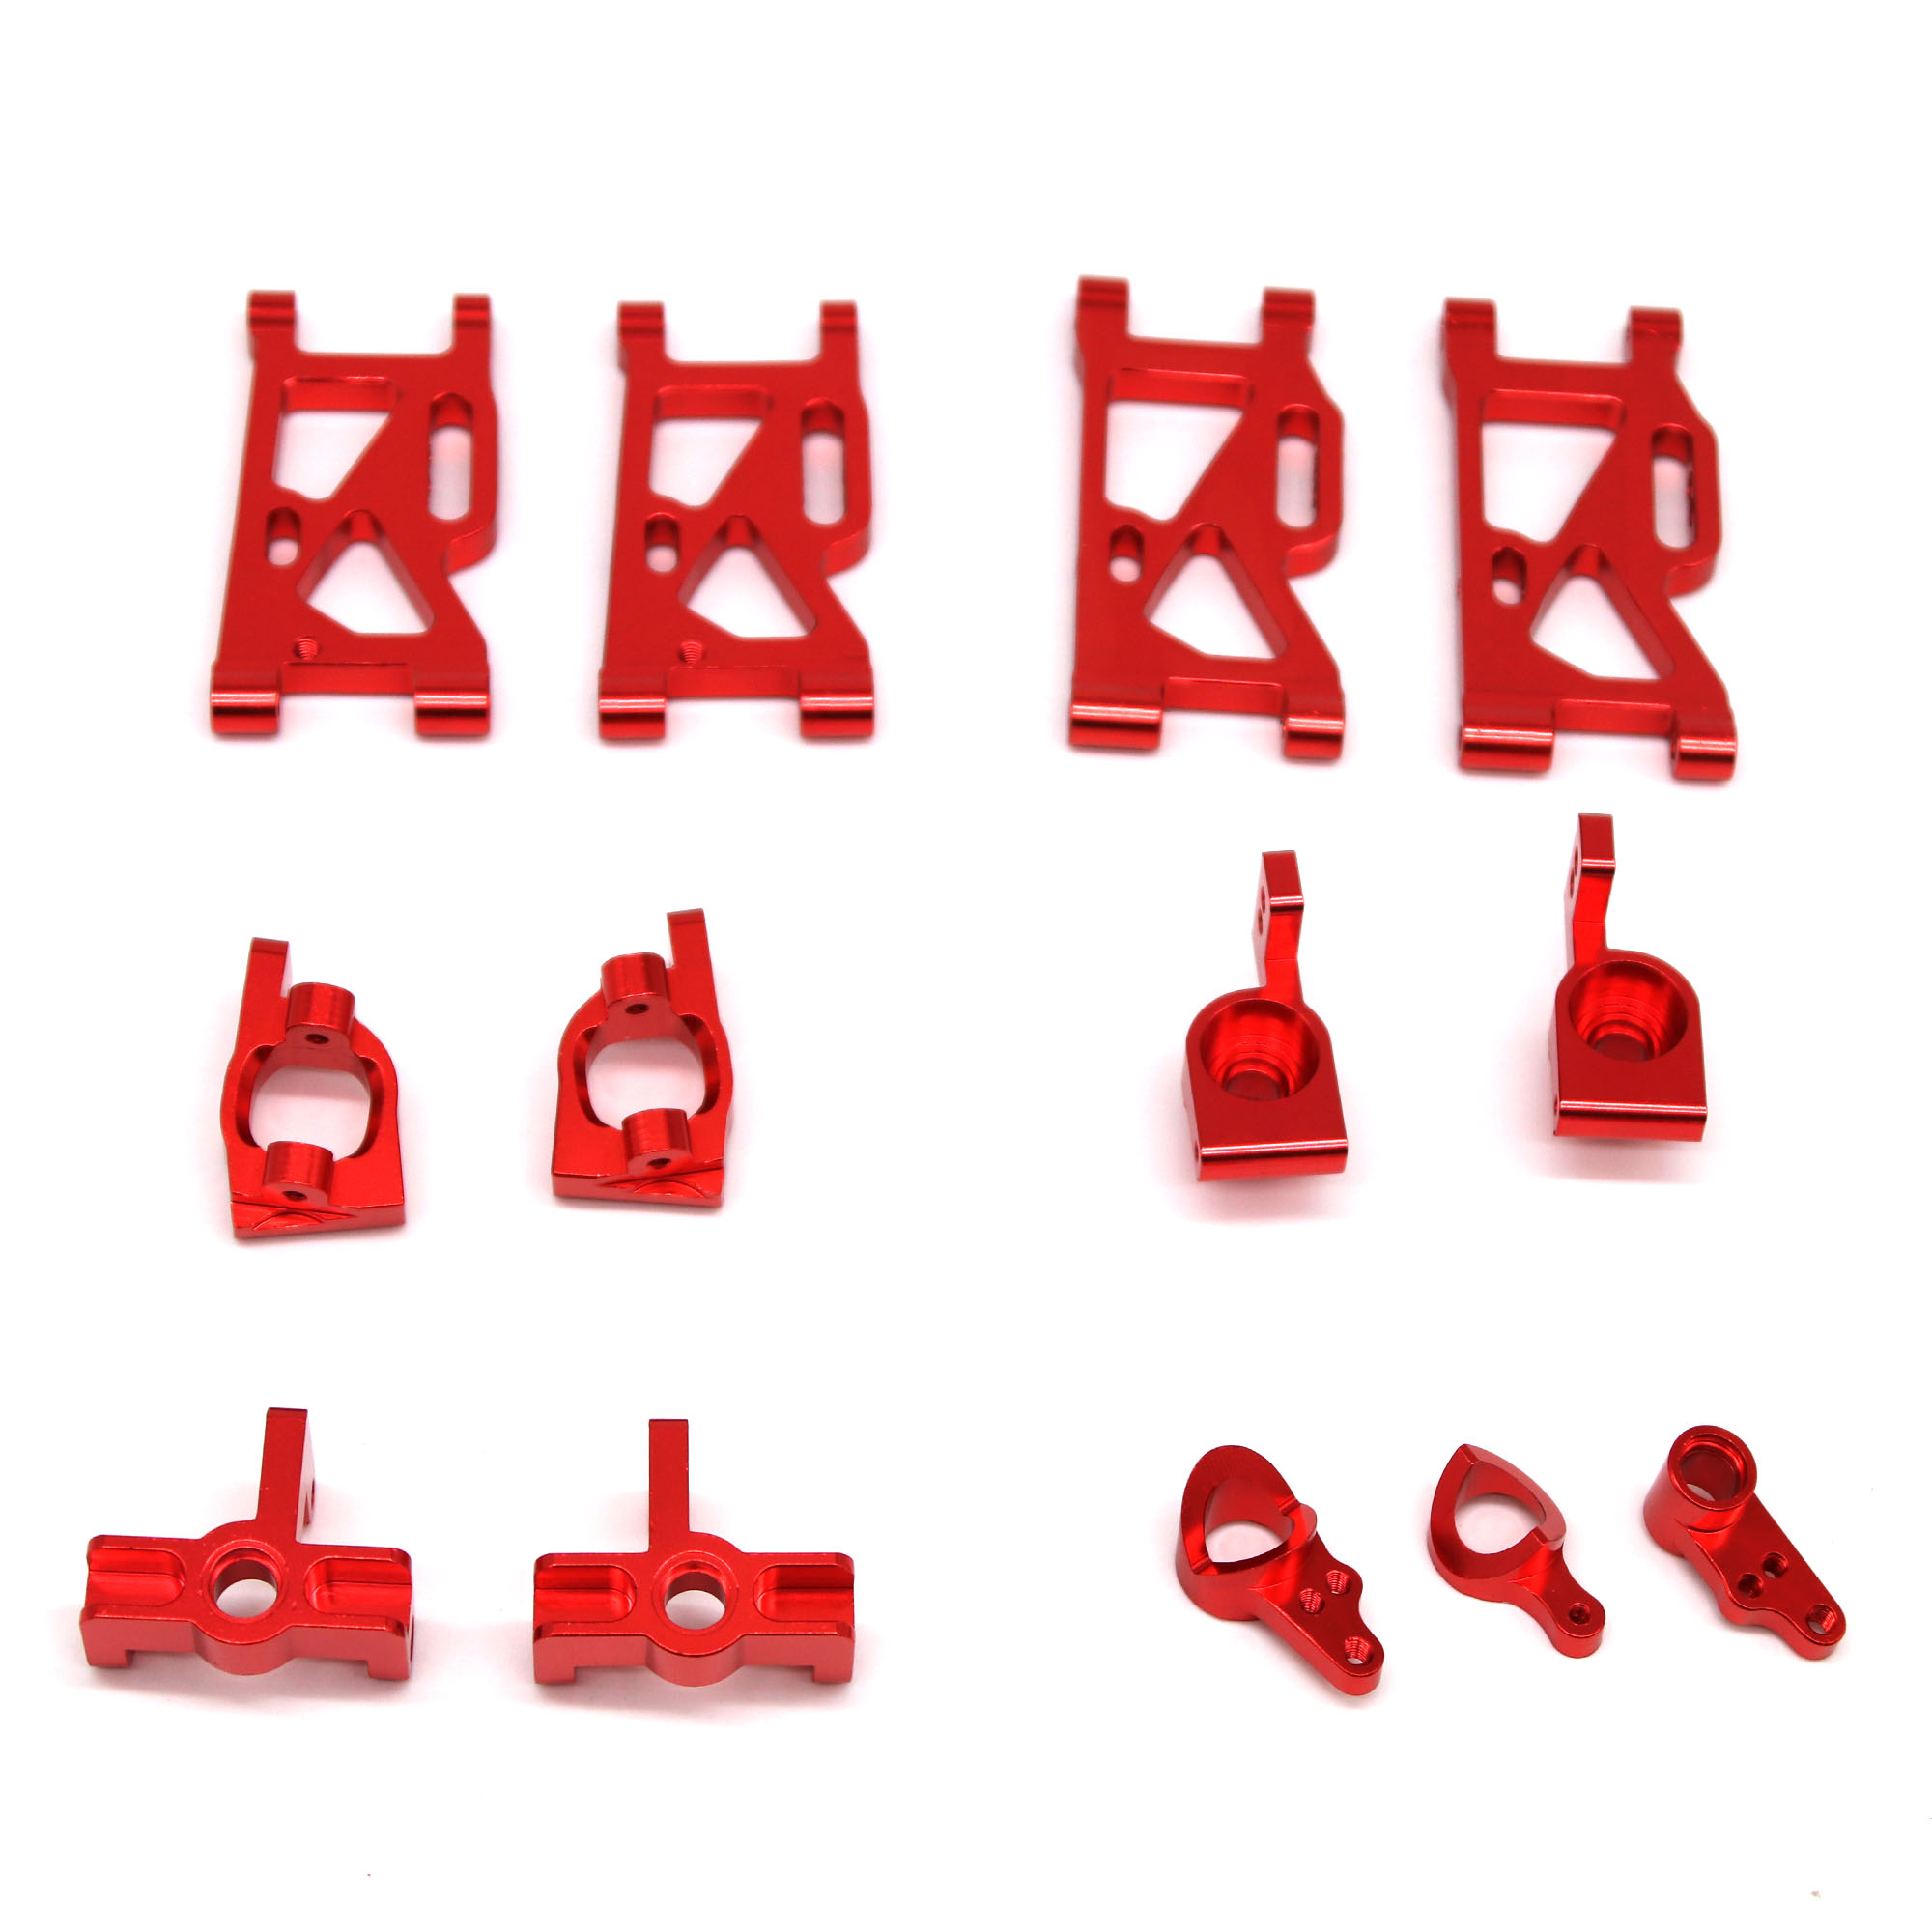 13Pcs/set Metal Front Rear Wheel Seat Base C Swing Arm Steering Clutch Component for WLtoys 144001 1/14 RC Car Upgrade Spare Parts red_13PCS